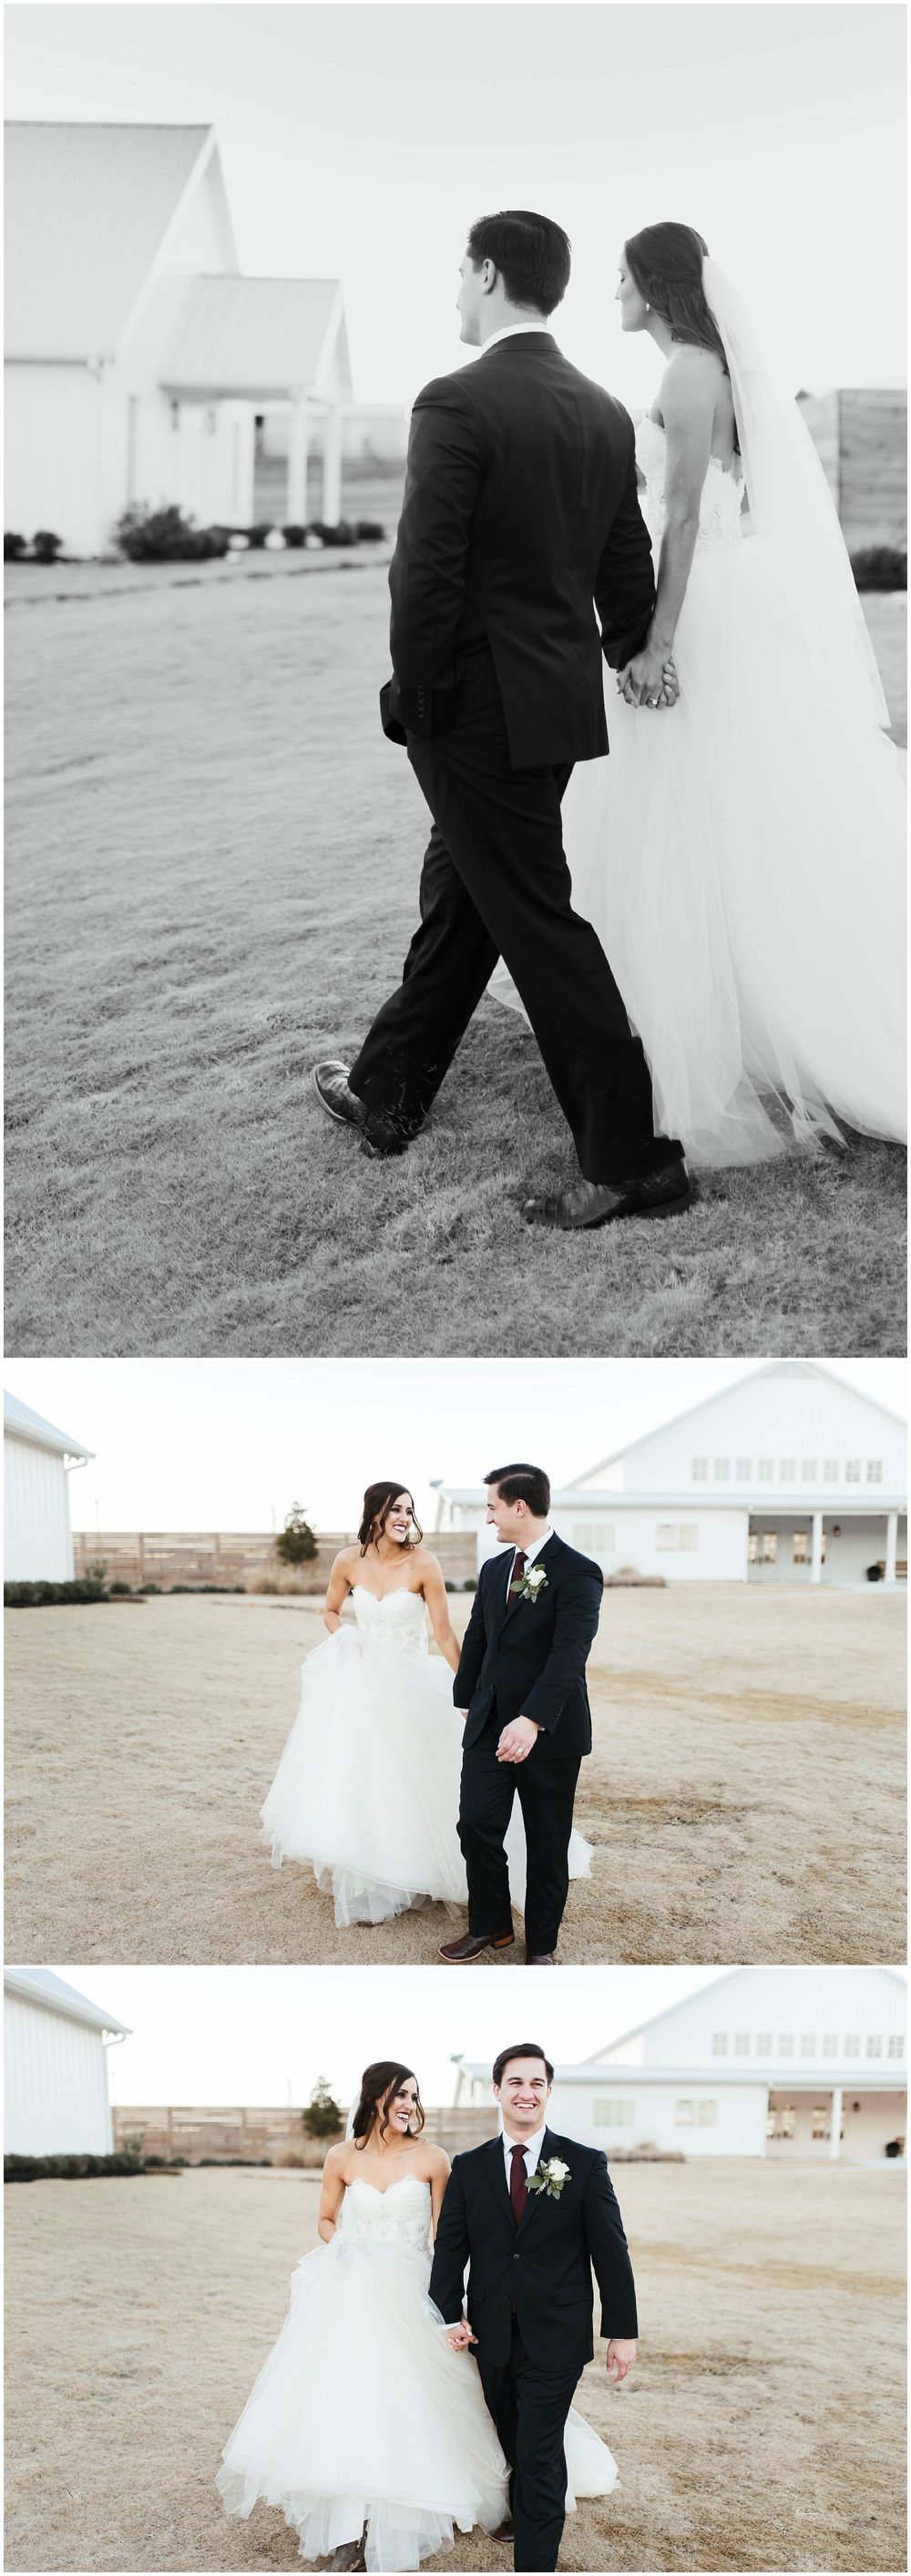 The Farmhouse, Montgomery, TX | Elegant, Rustic Farmhouse Wedding | Houston Wedding Photographer | www.jordanmitchellphotography.com